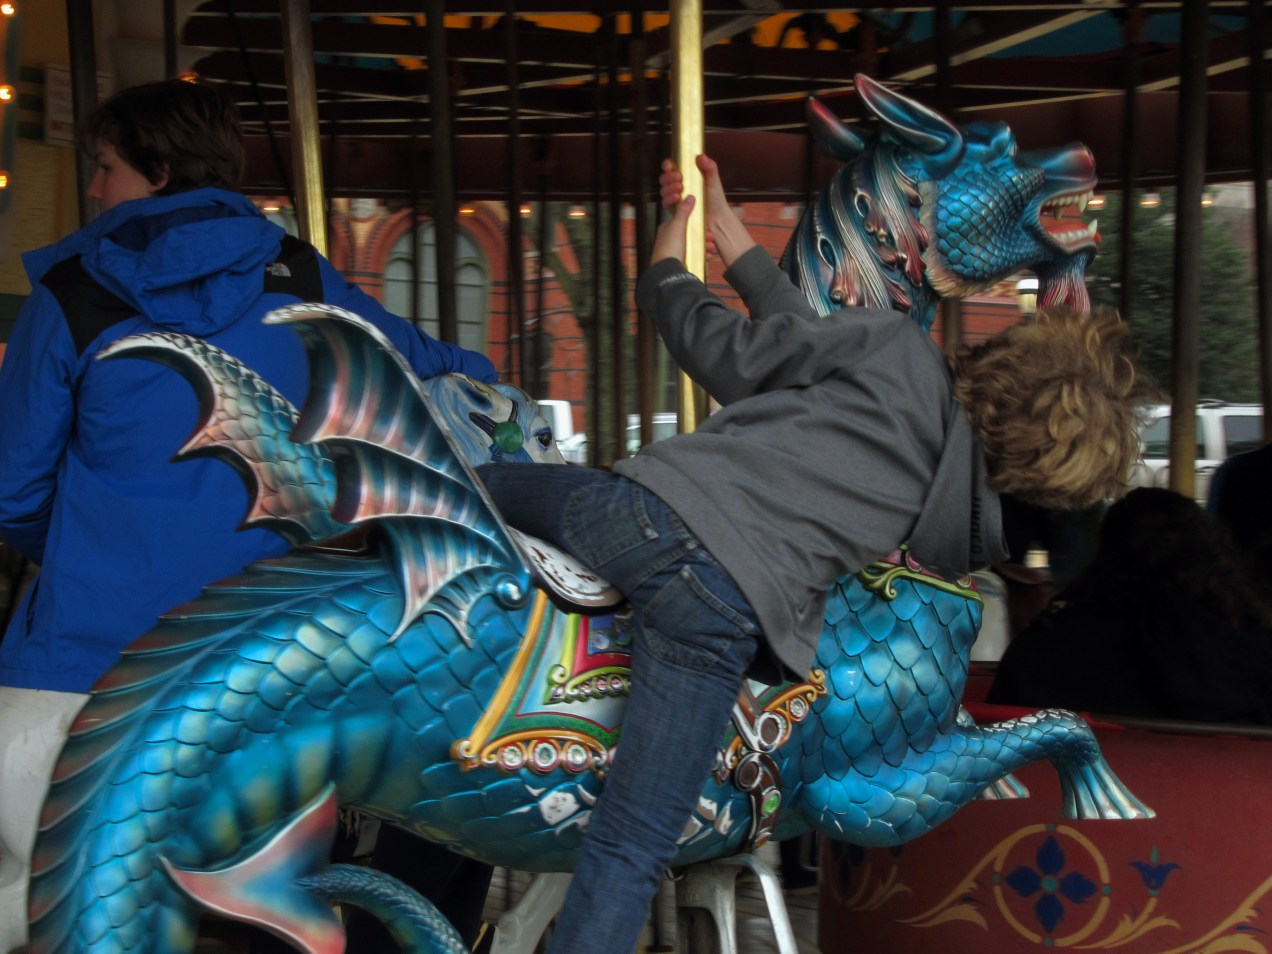 Riding the carousel dragon